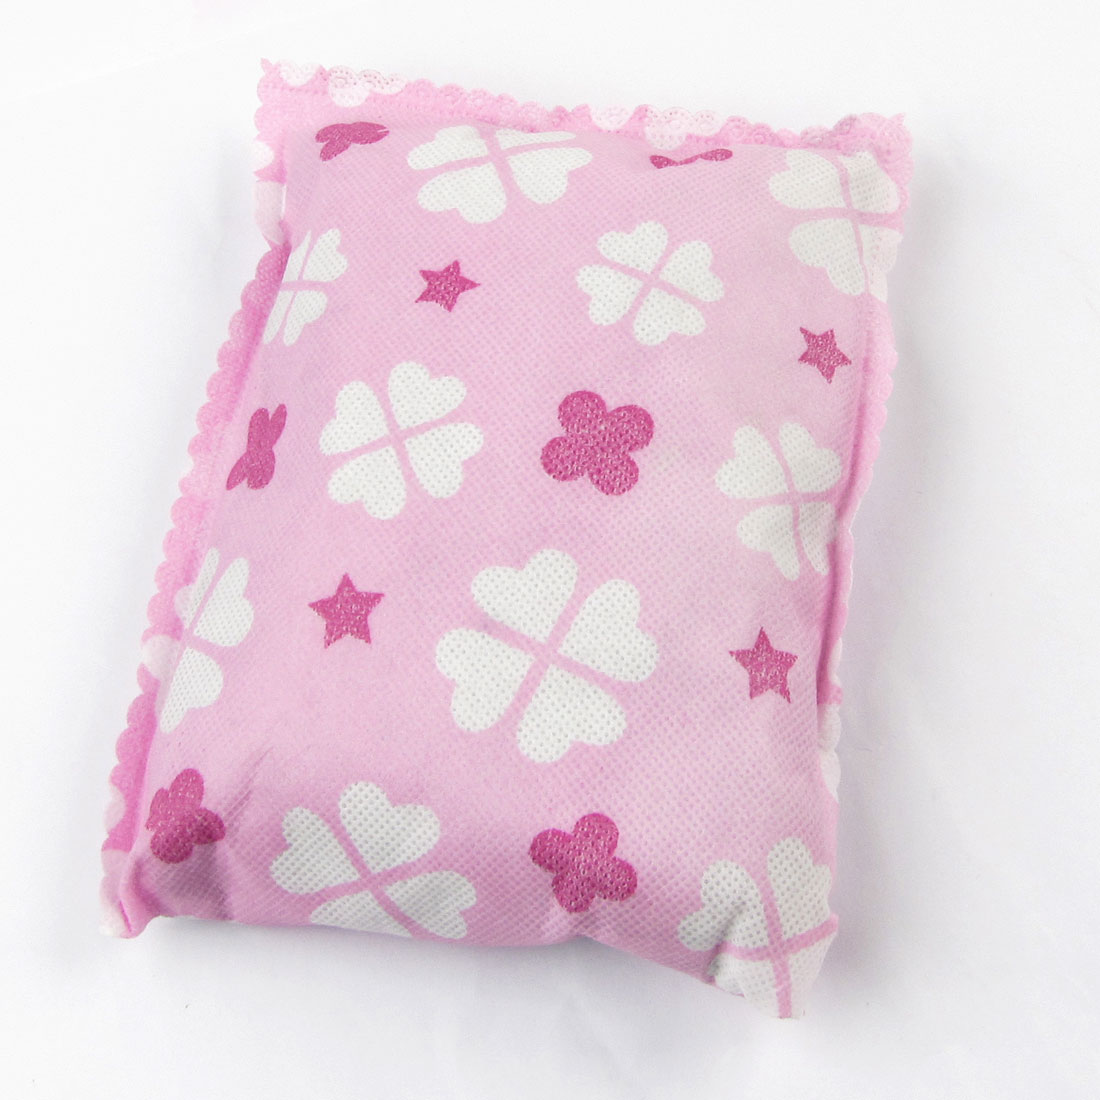 Pink White Flowers Print Odor Absorber Air Deodorizer Freshener for Auto